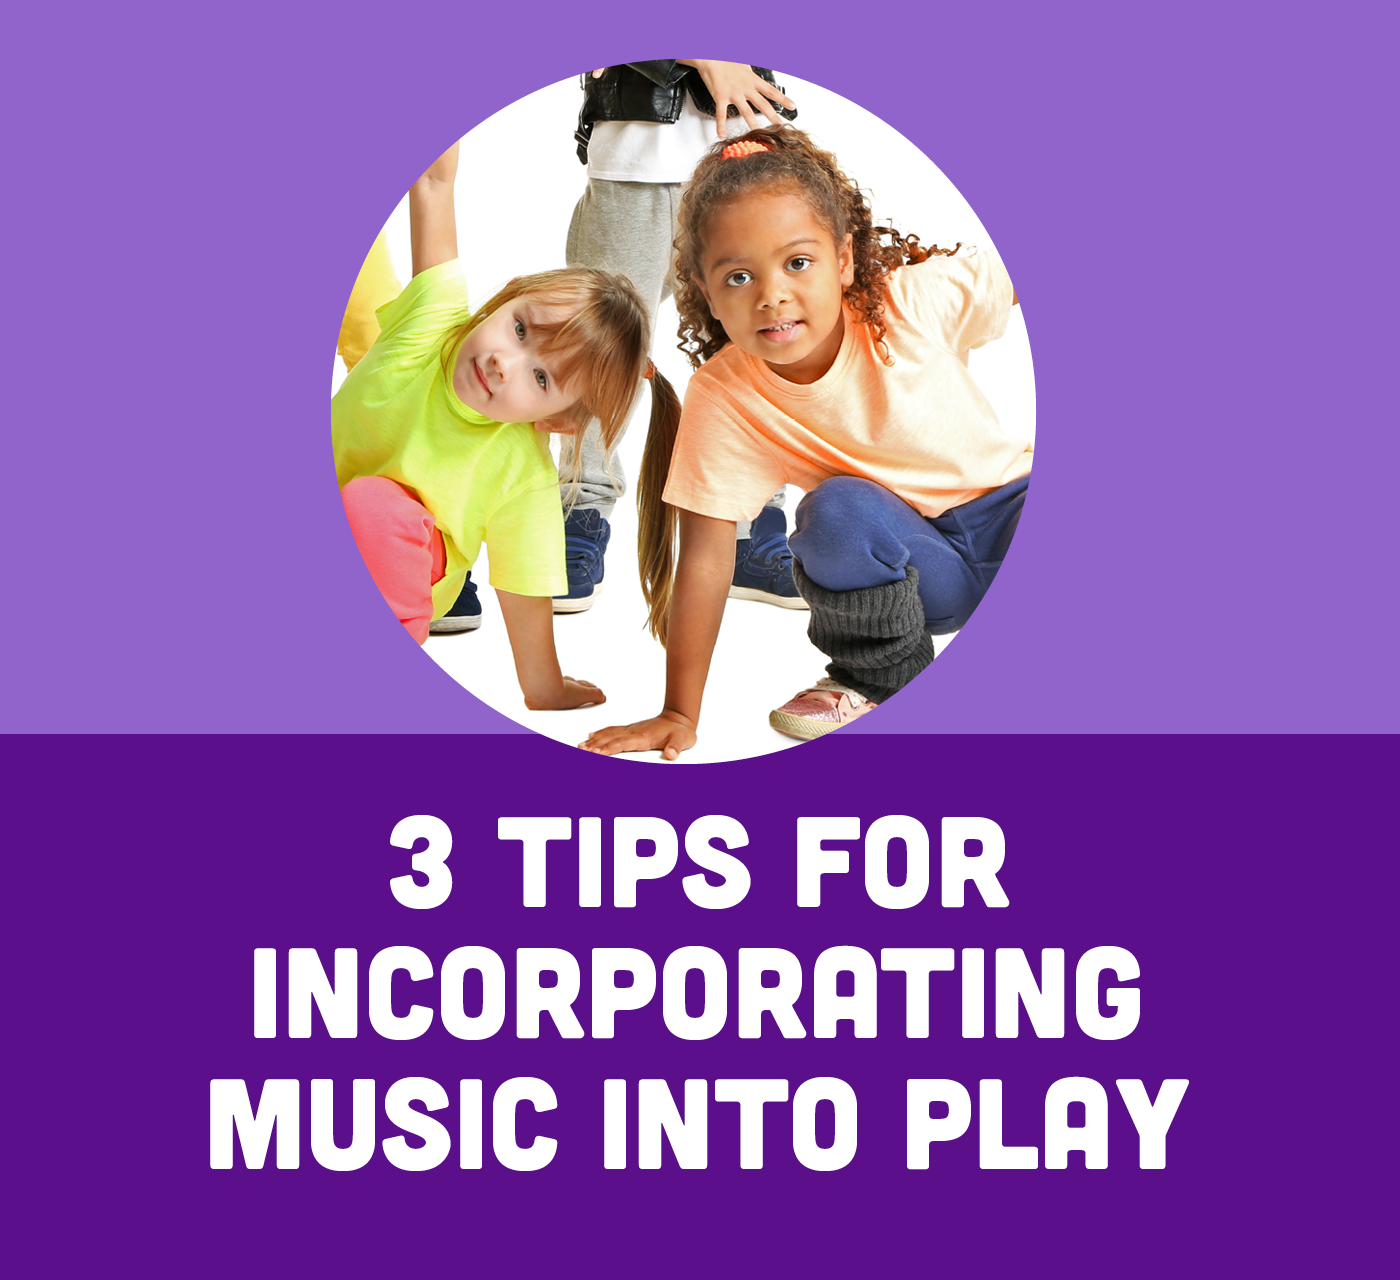 3 Tips for Incorporating Music Into Play